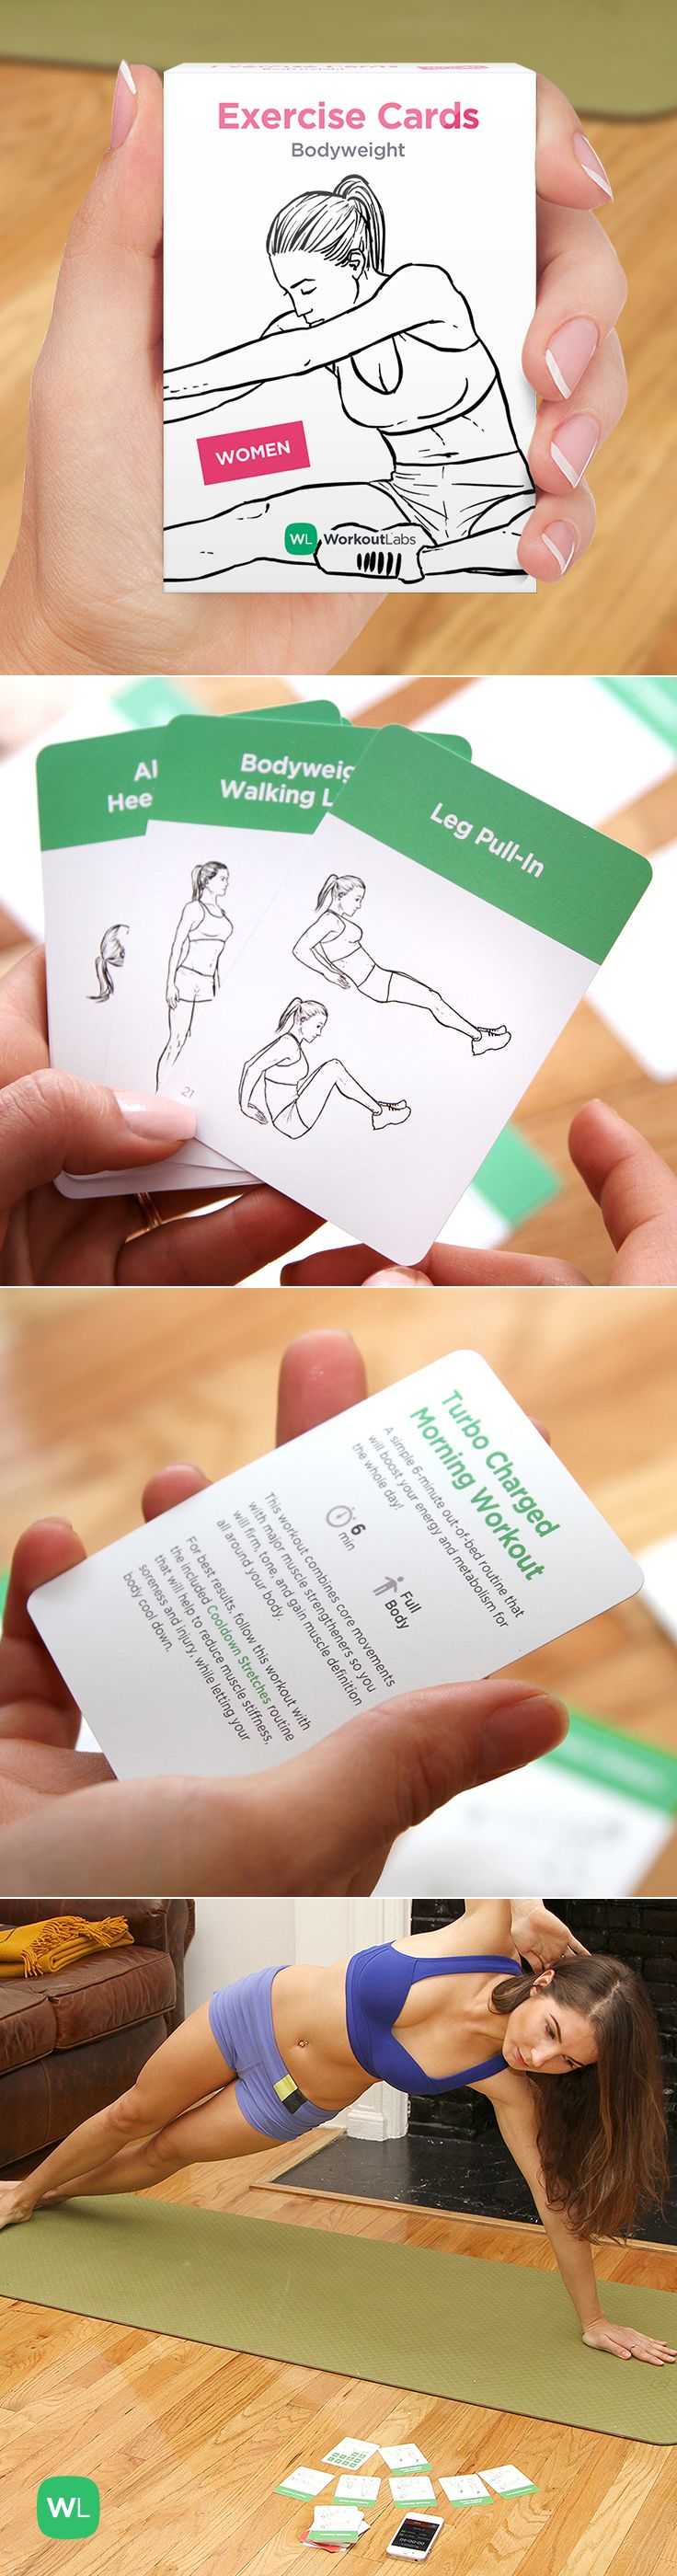 What a fun and simple way to work out anywhere without equipment! Perfect stocking stuffer and fitness gift too. http://WLabs.me/wlecds